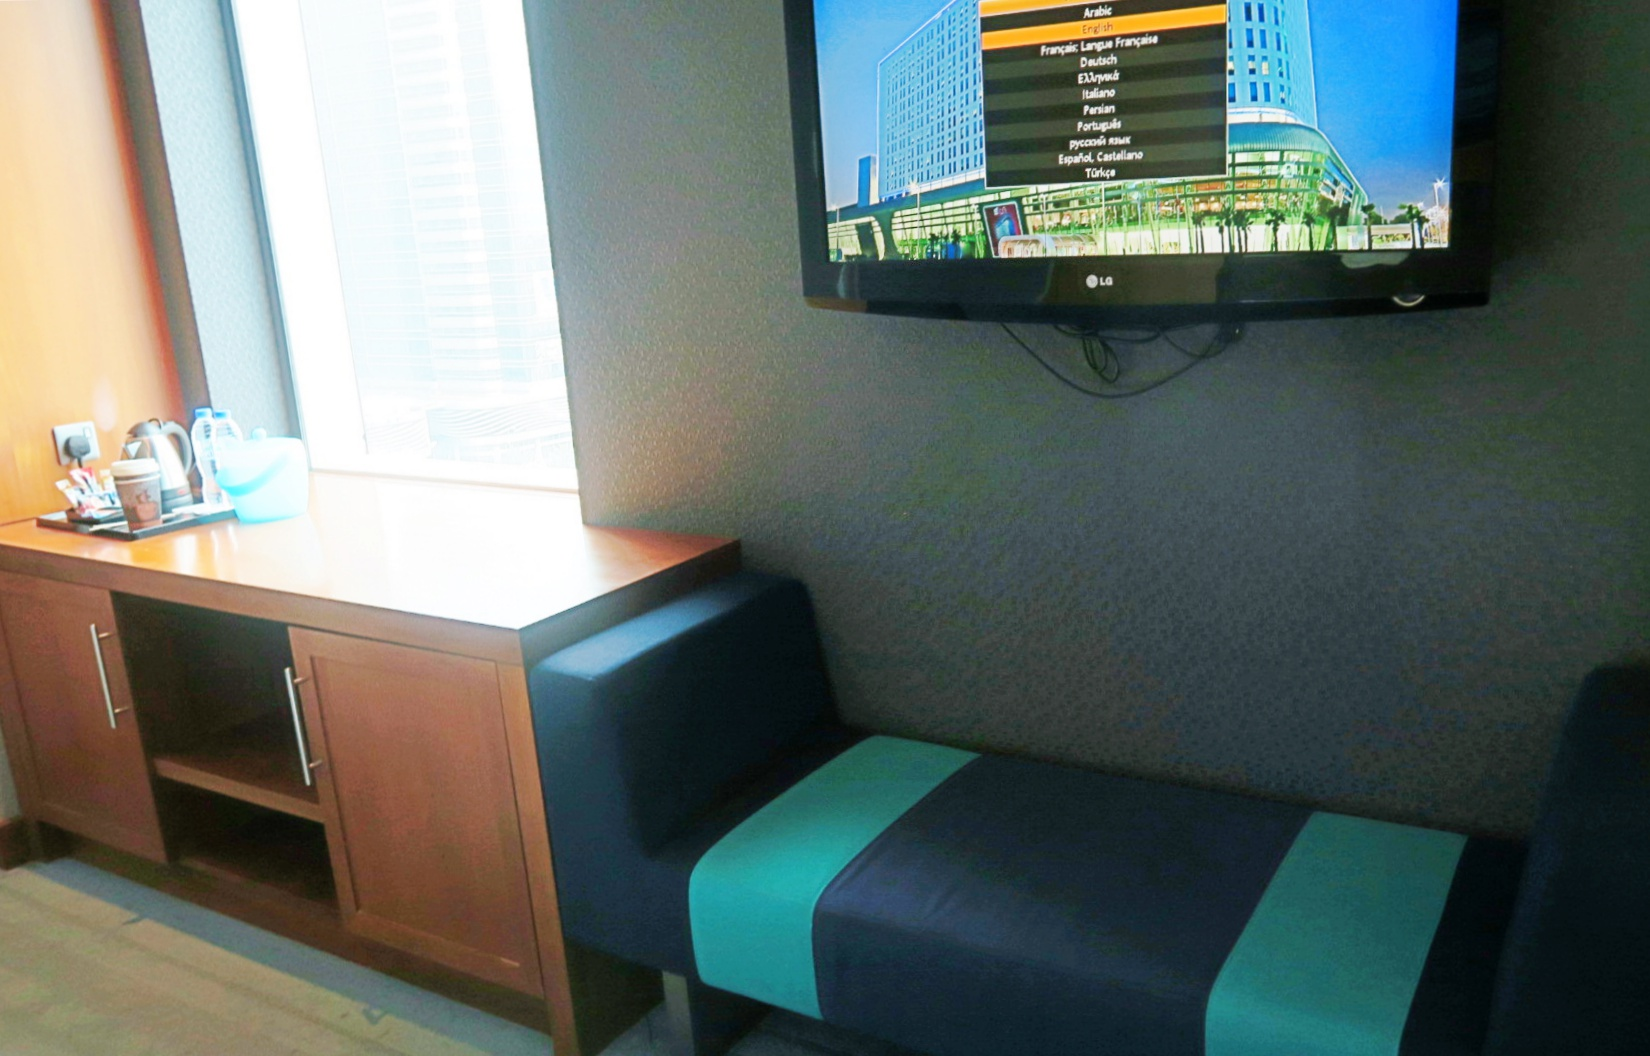 Our Stay at the Aloft Abu Dhabi